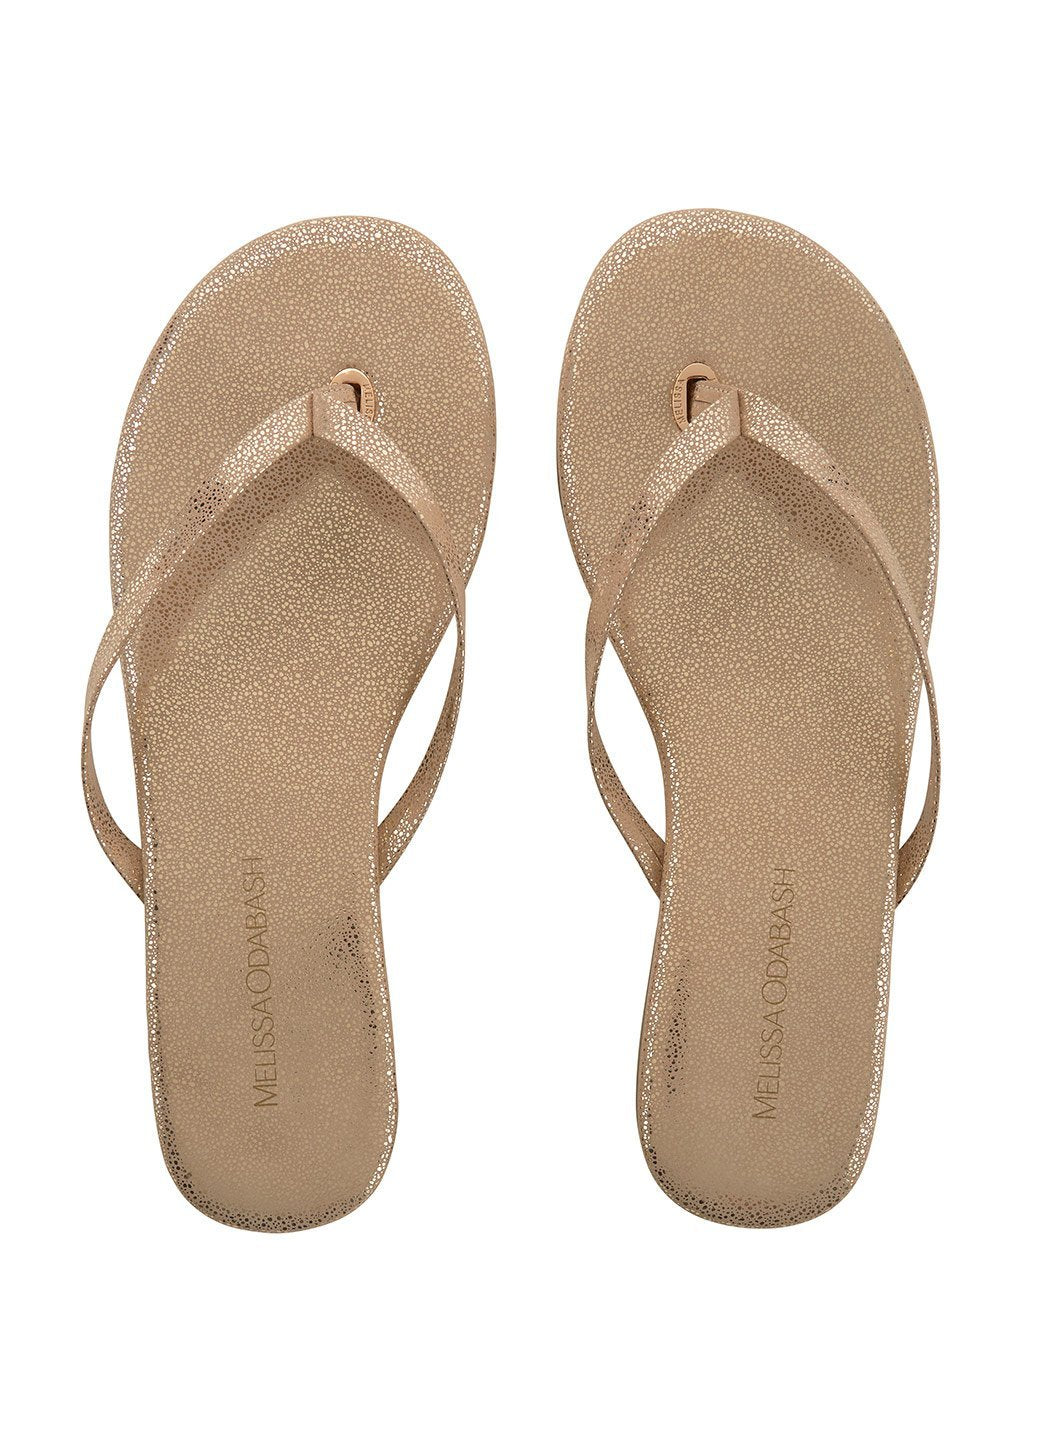 flip flop leather gold_sparkle 2019